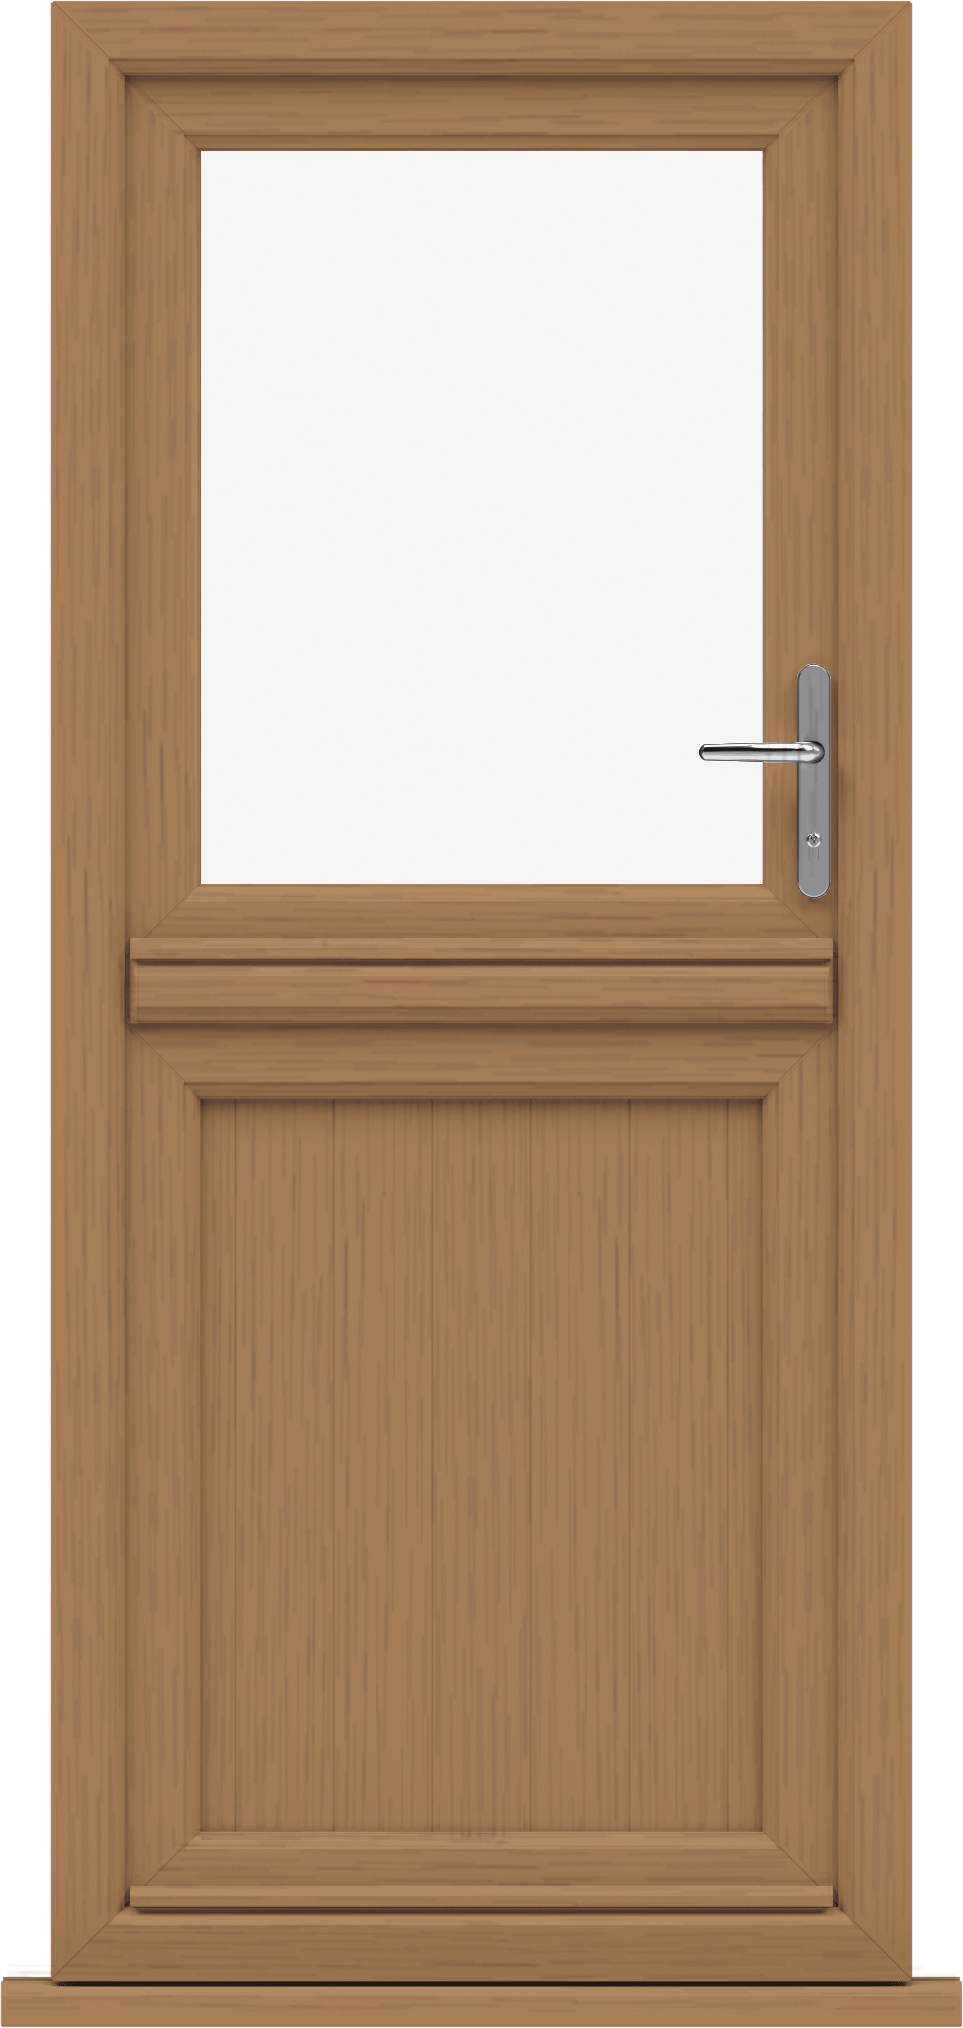 Stable Door Window : Southgate windows trade upvc stable doors bridgwater